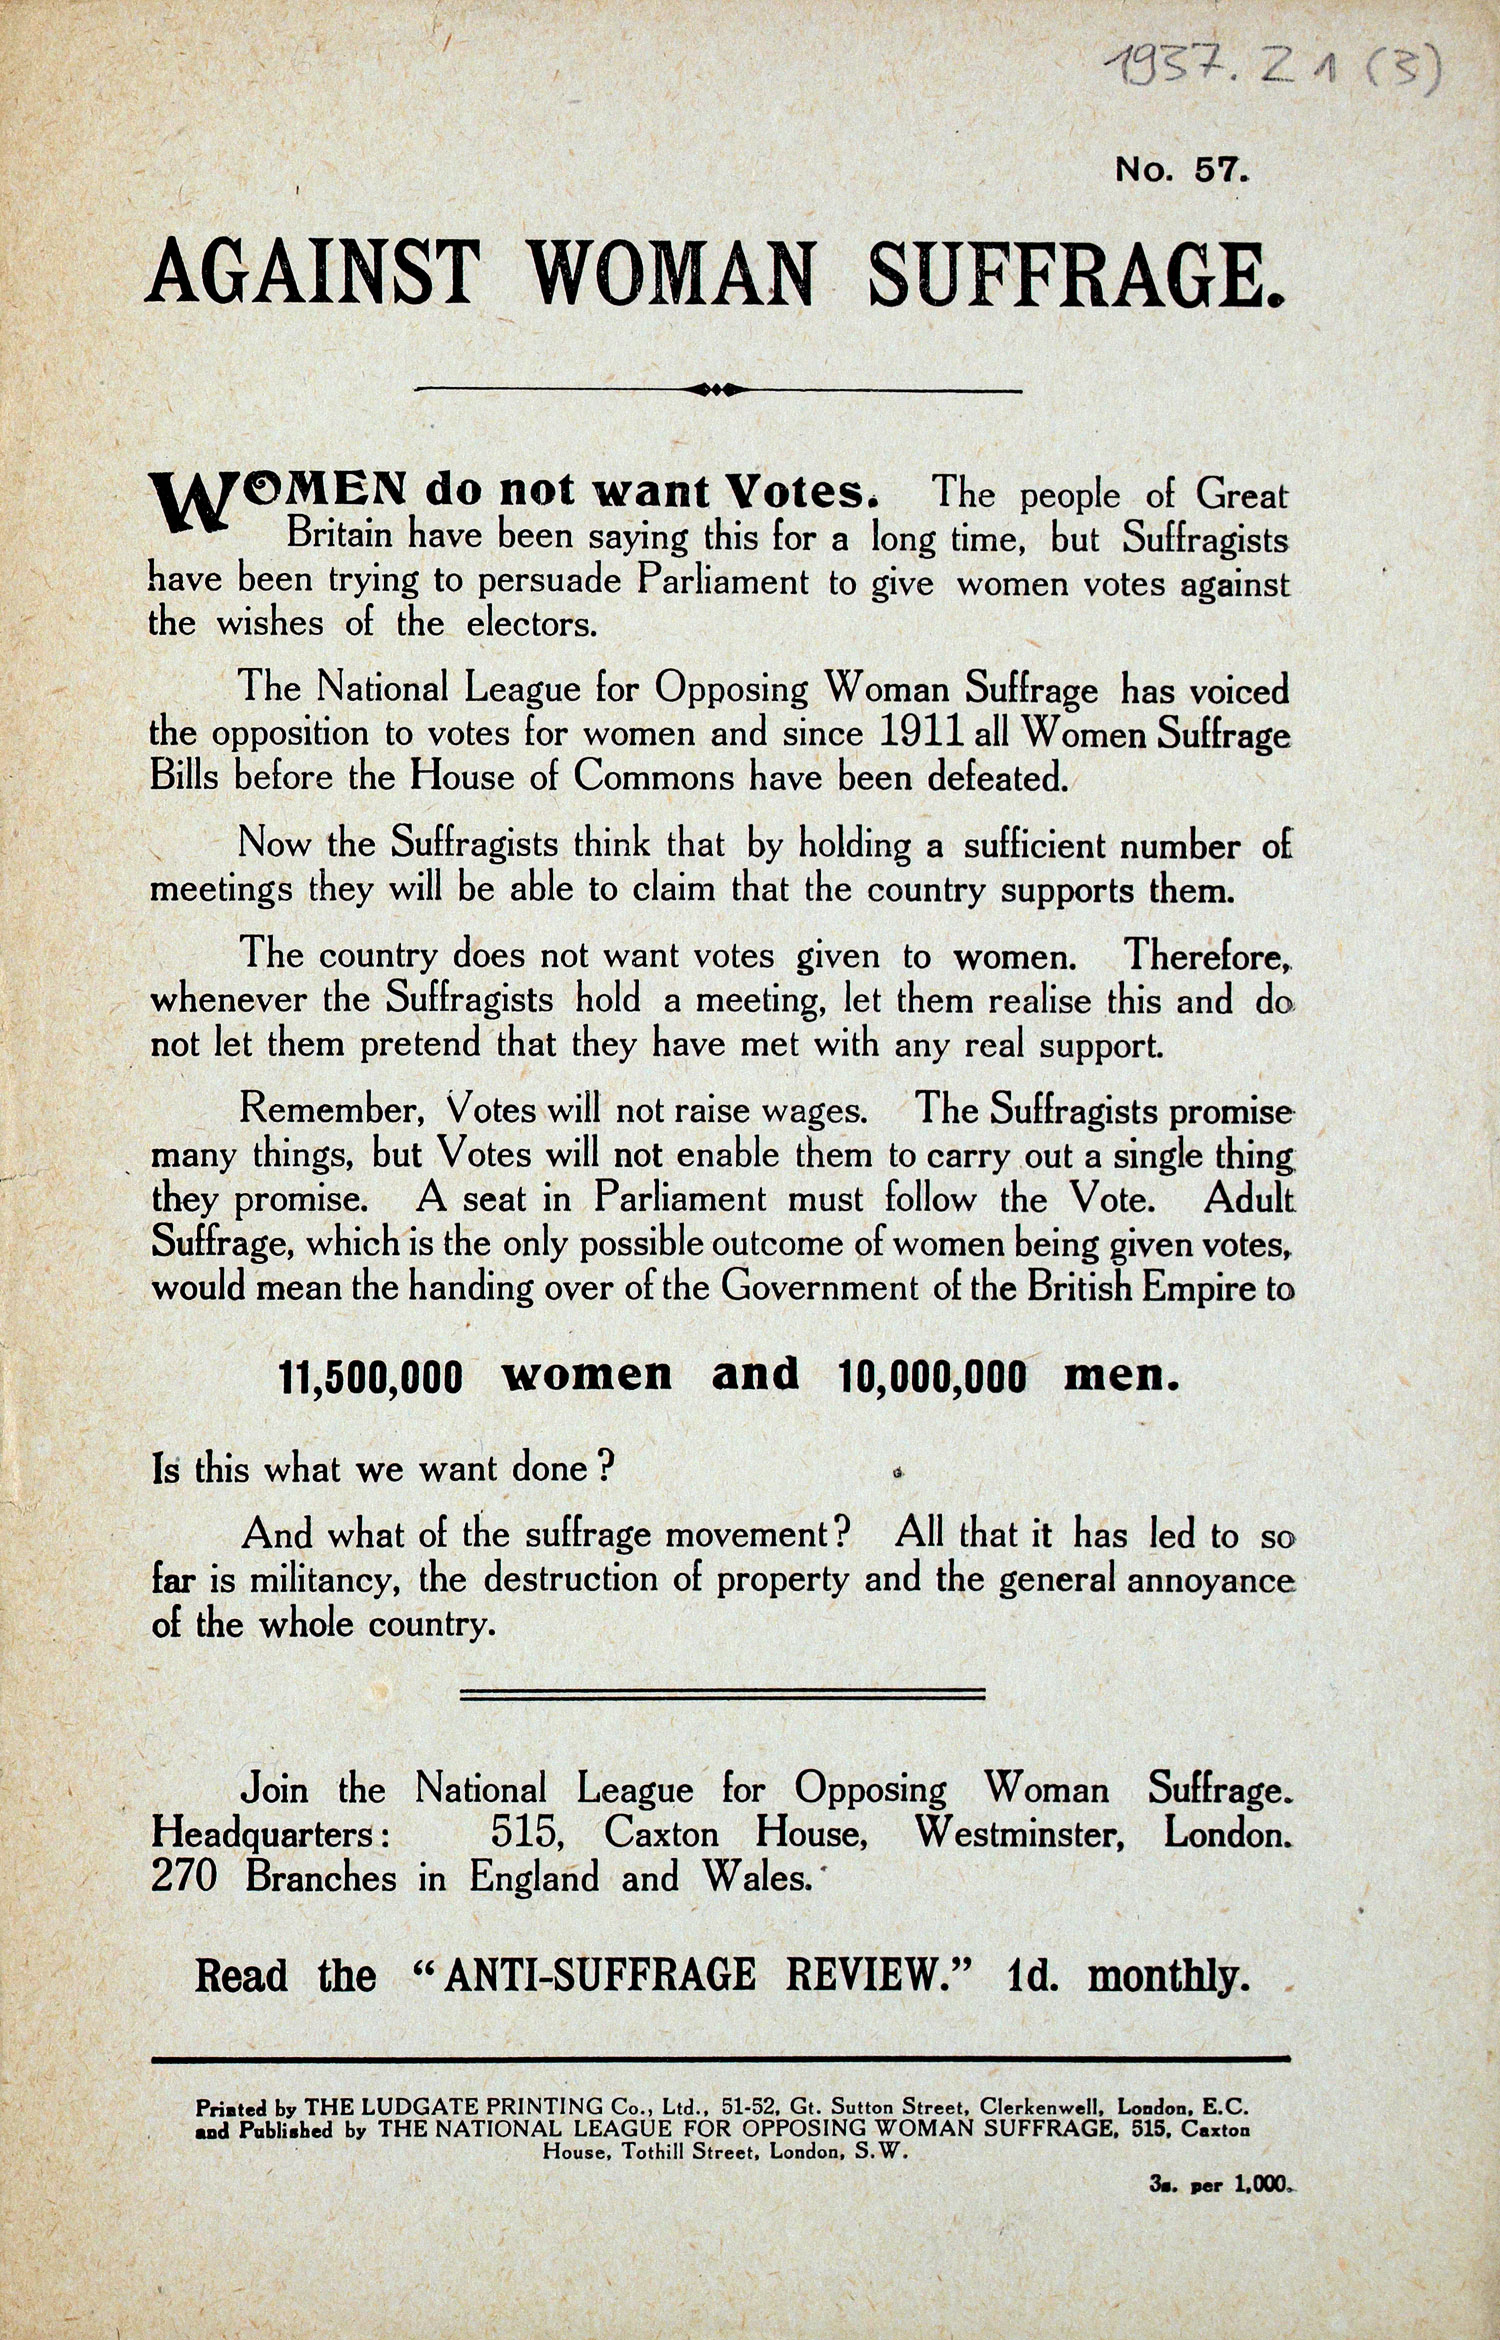 Extract from anti-suffrage pamphlet